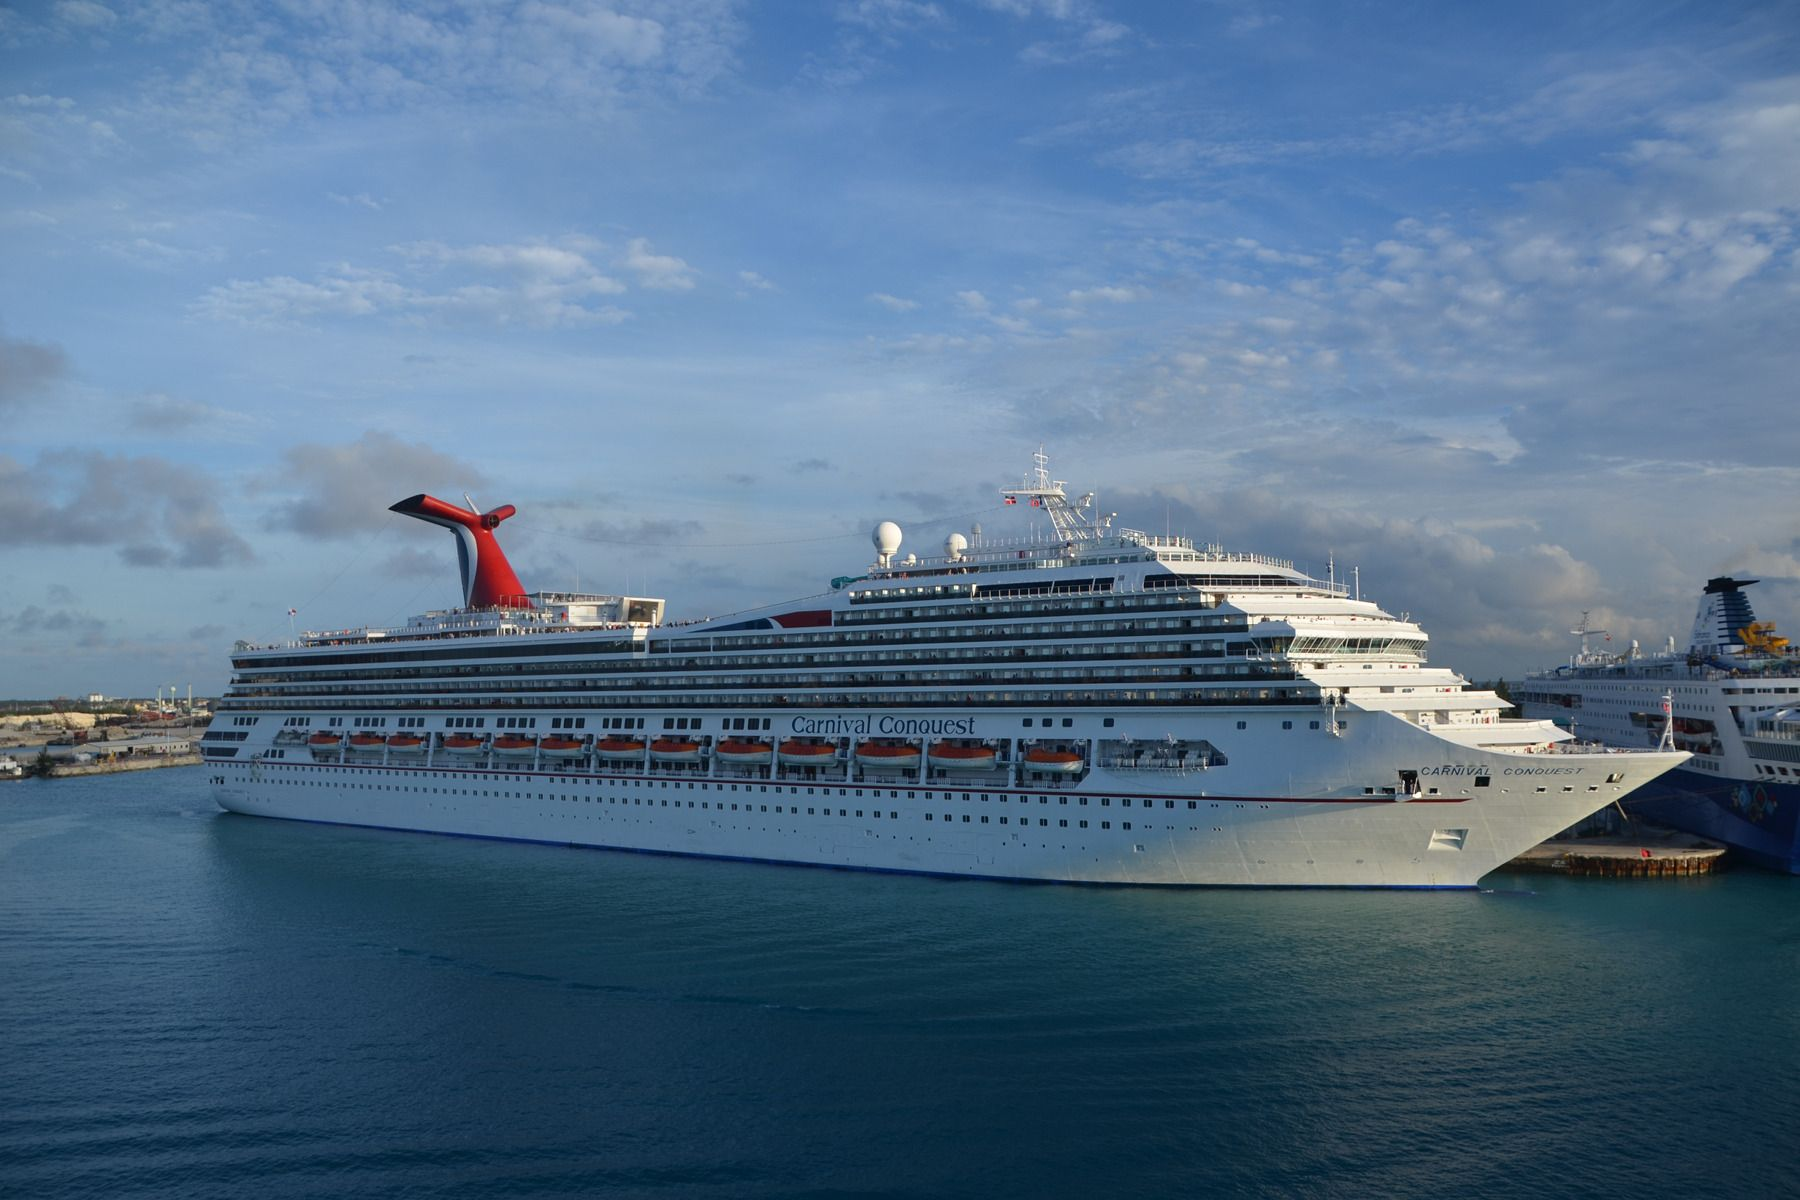 Days Places To Visit Pinterest Cruise Pictures Ship - Cruise ship finder app